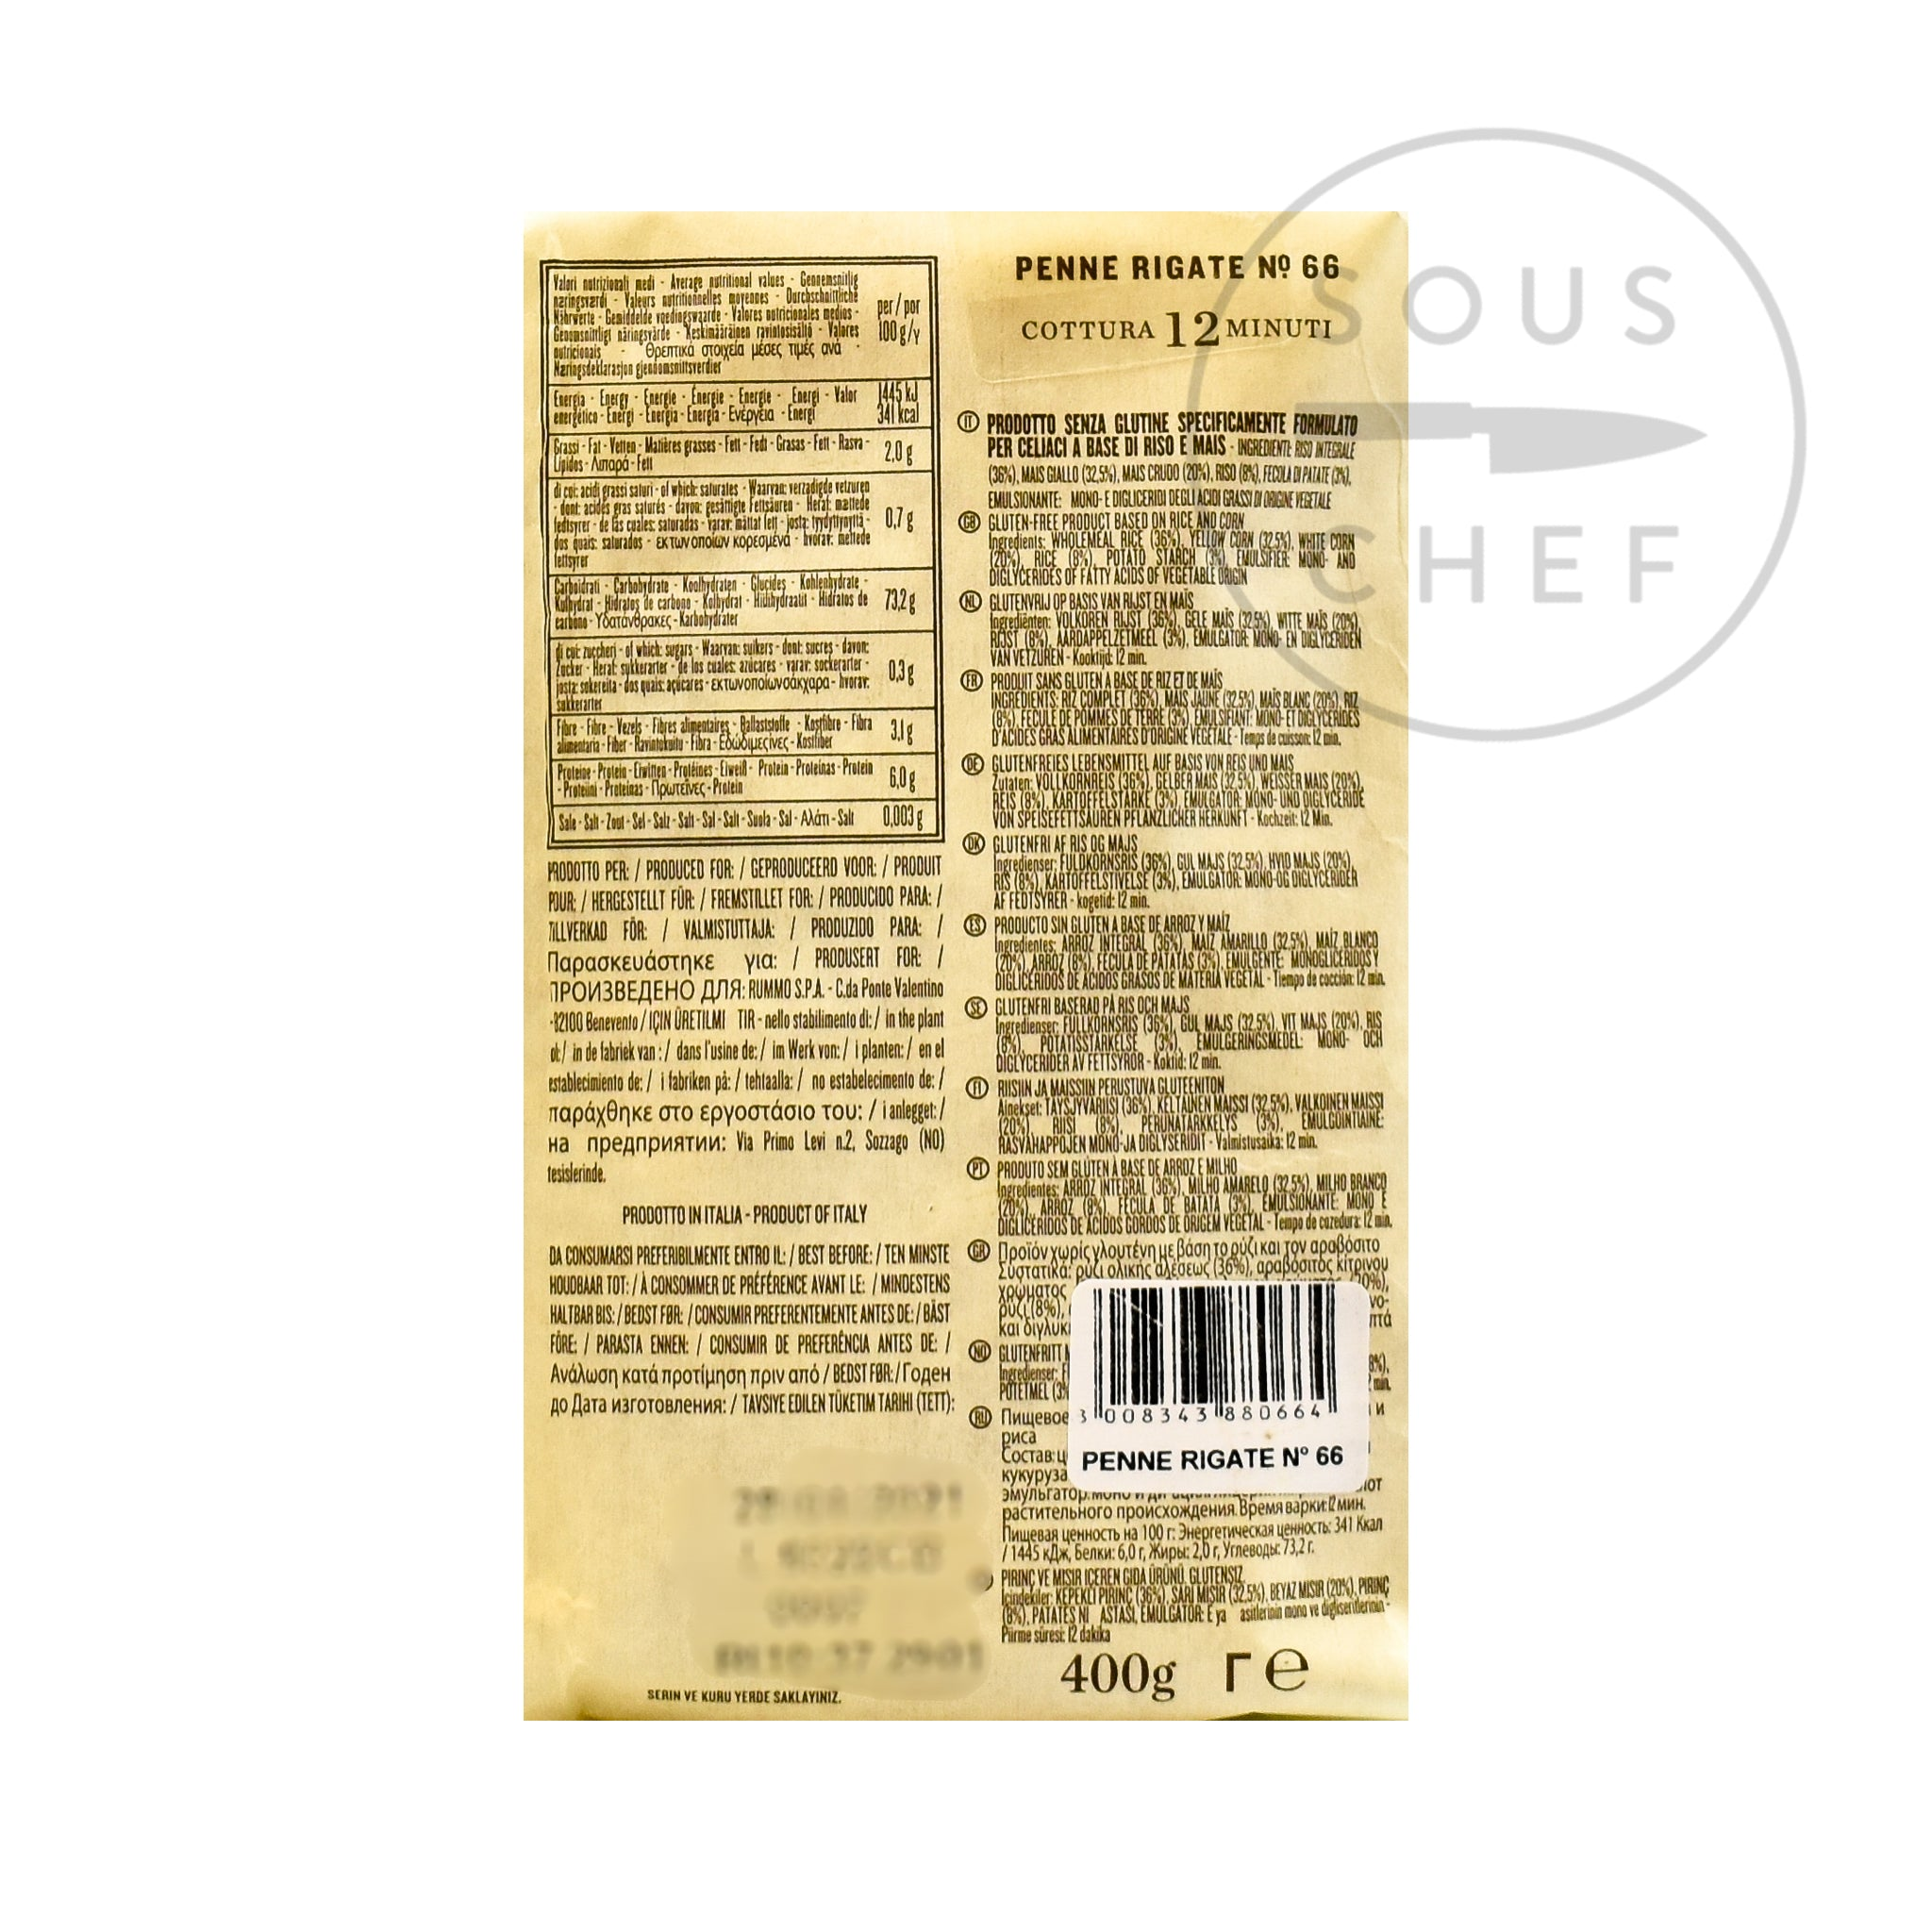 Rummo Gluten Free Penne Rigate 400g nutritional information ingredients